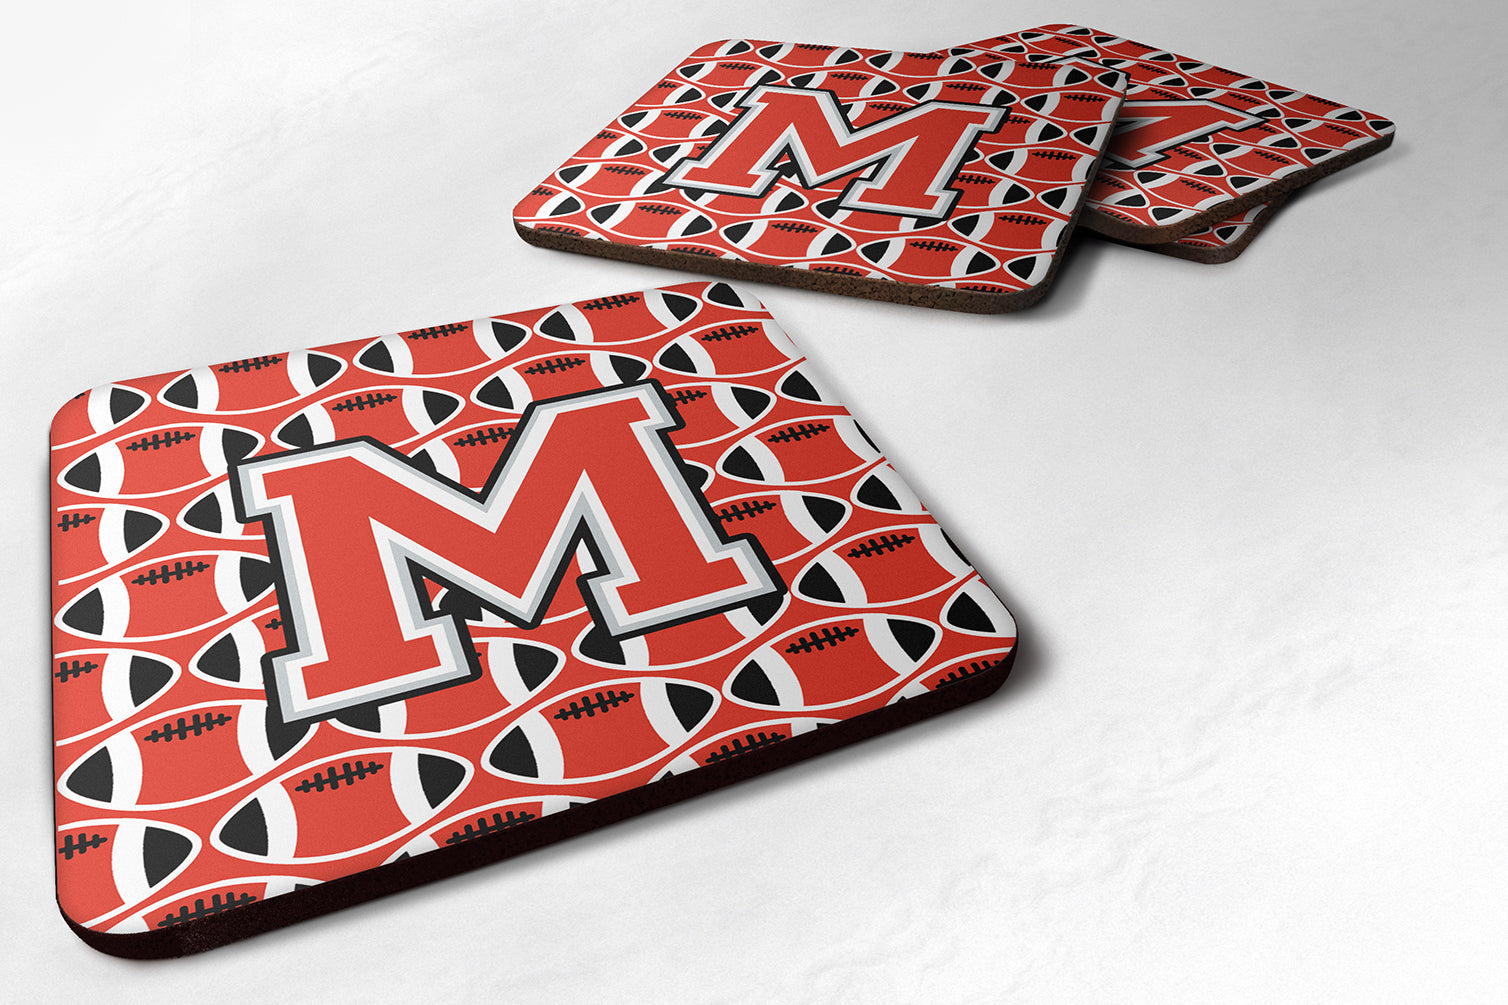 Letter M Football Scarlet and Grey Foam Coaster Set of 4 CJ1067-MFC by Caroline's Treasures